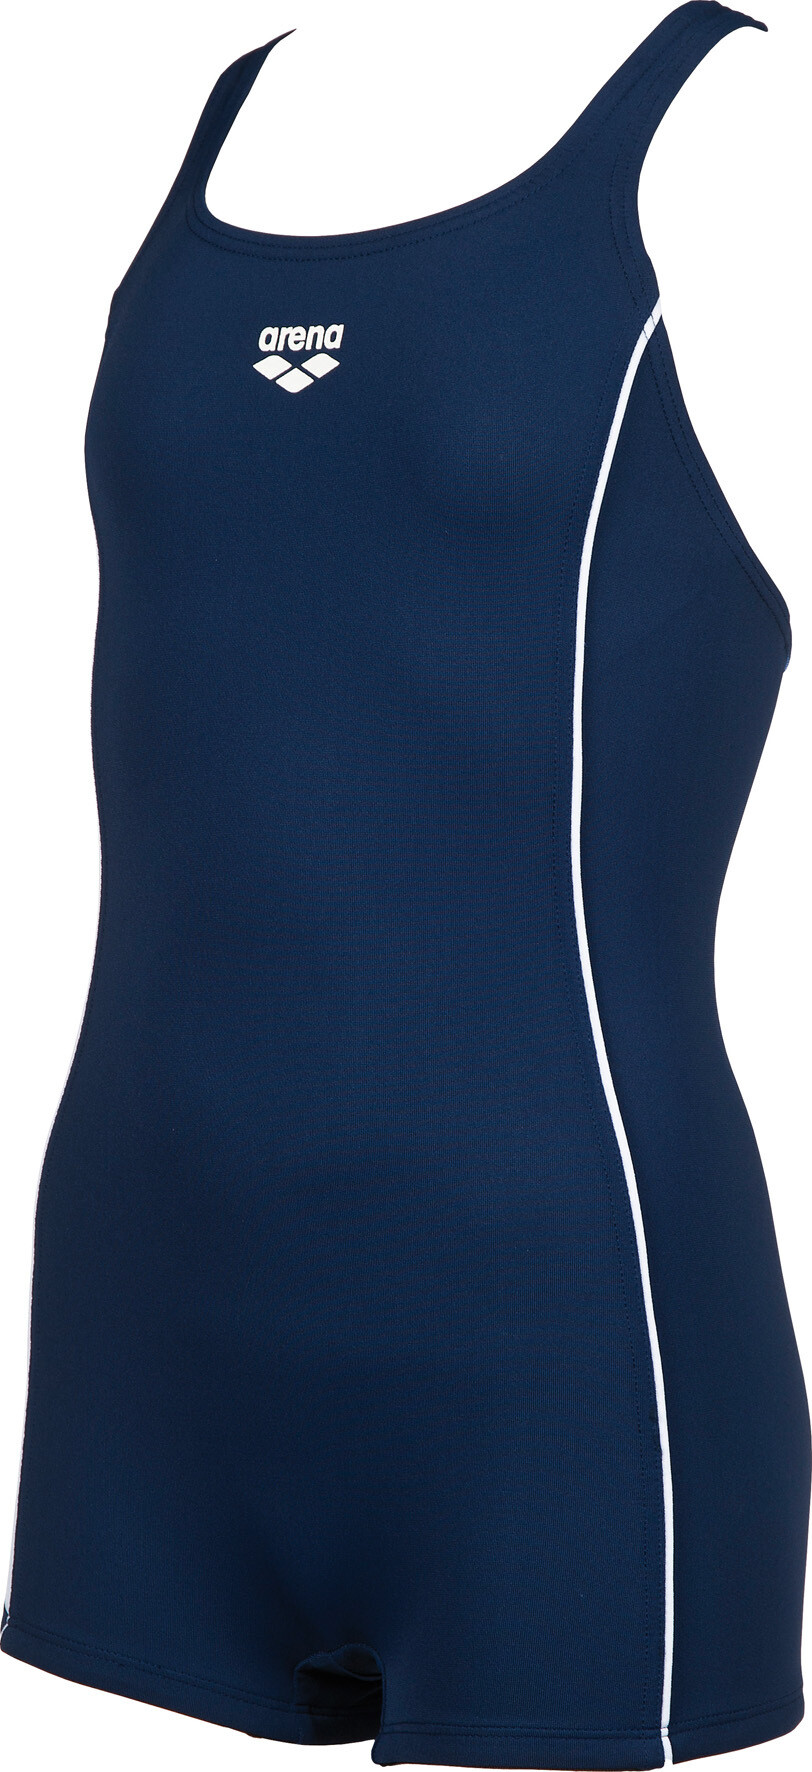 arena Finding Badedragt Piger, navy-white   swim_clothes